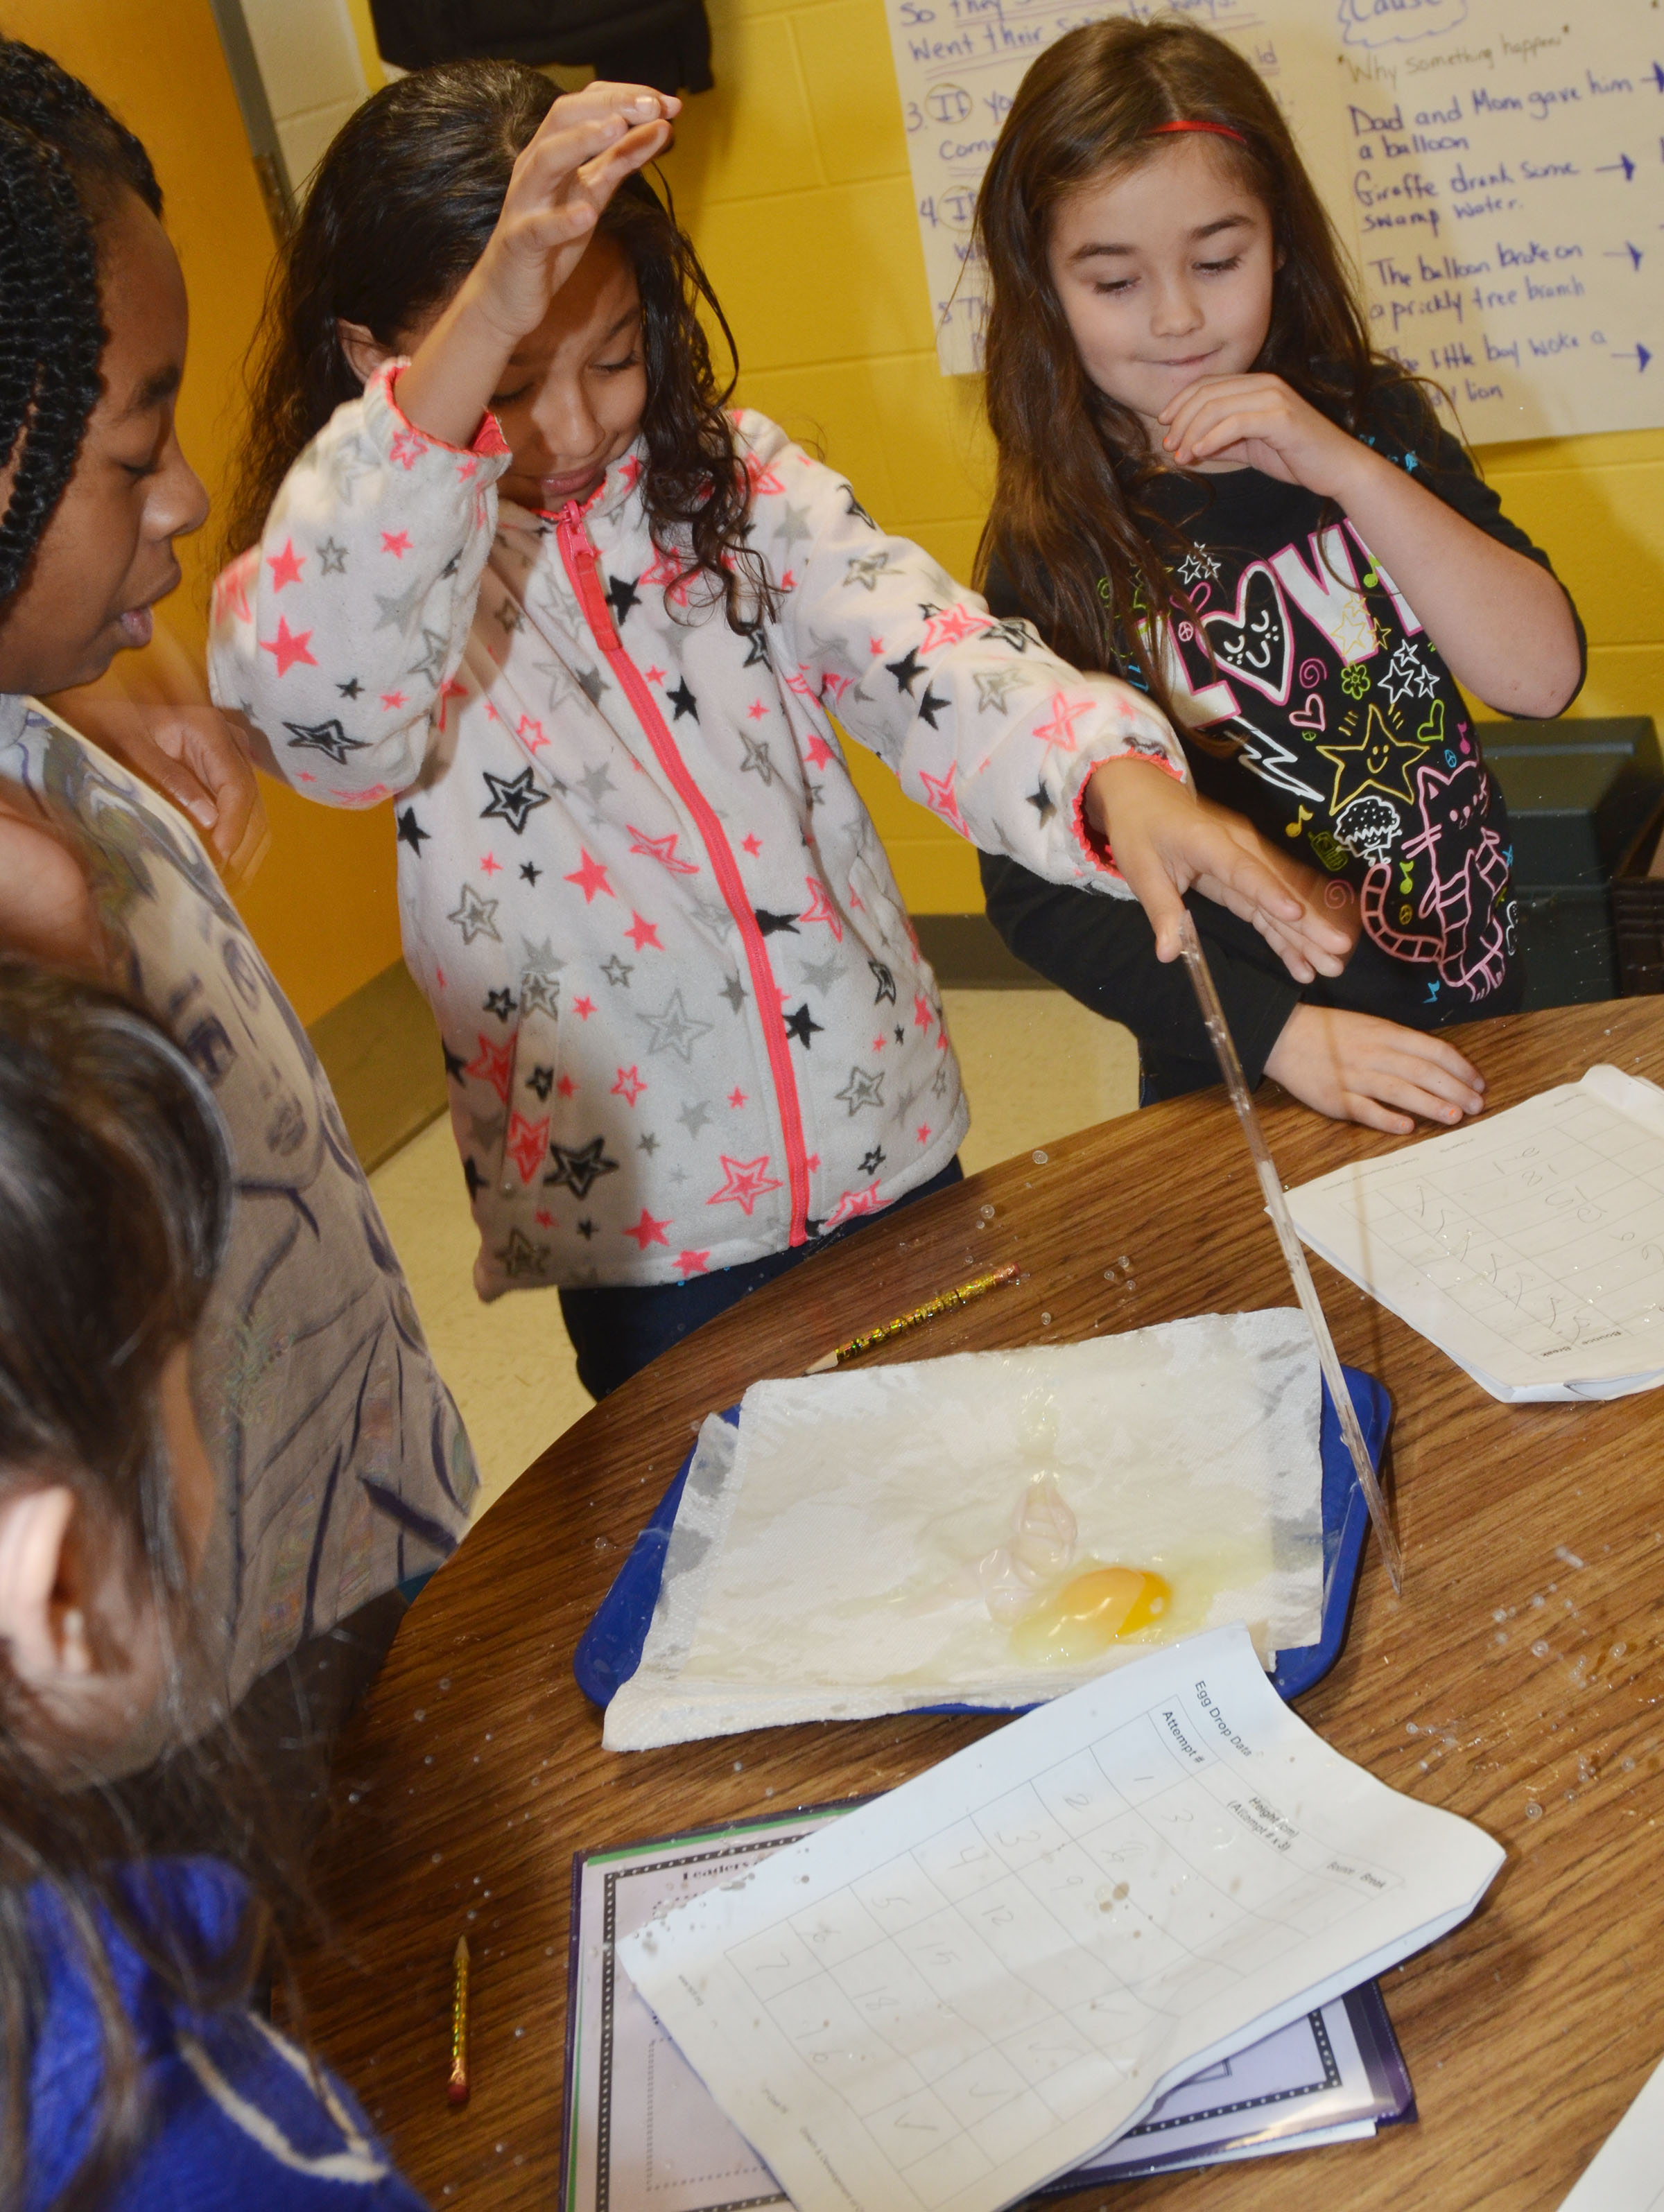 CES third-grader Alyssa Knezevic drops her egg and it splatters.